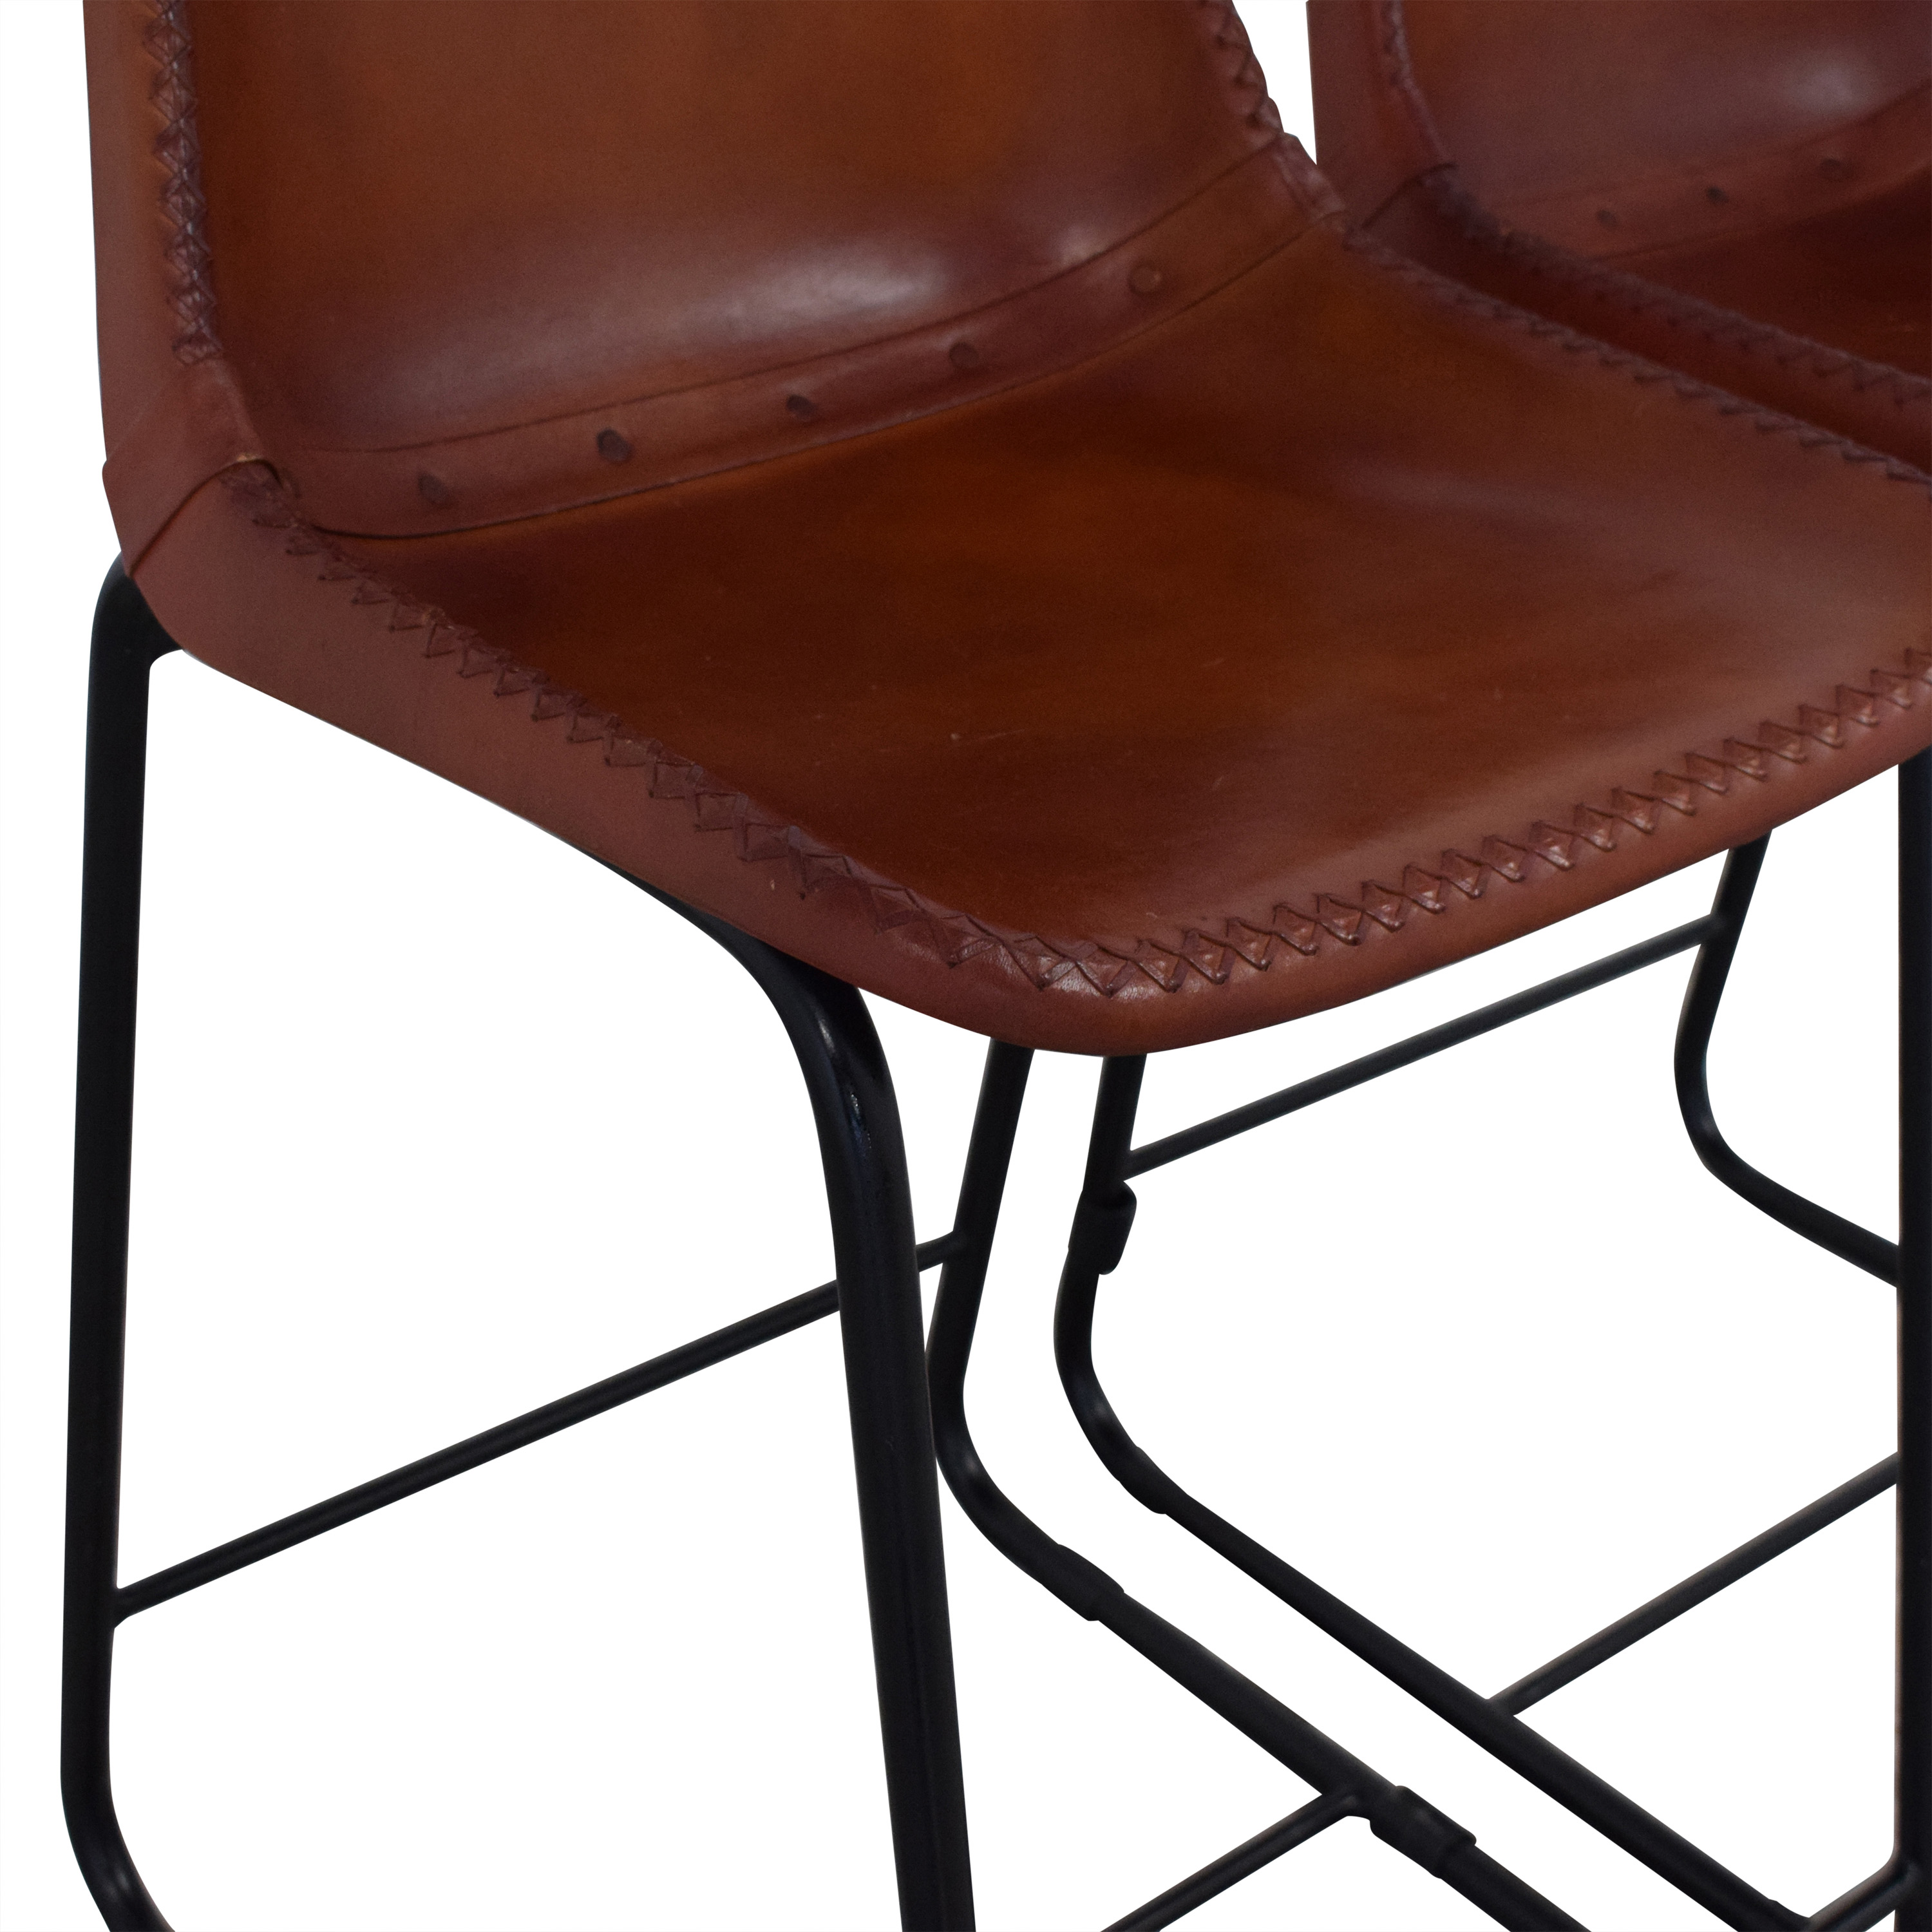 buy CB2 Roadhouse Counter Stools CB2 Chairs